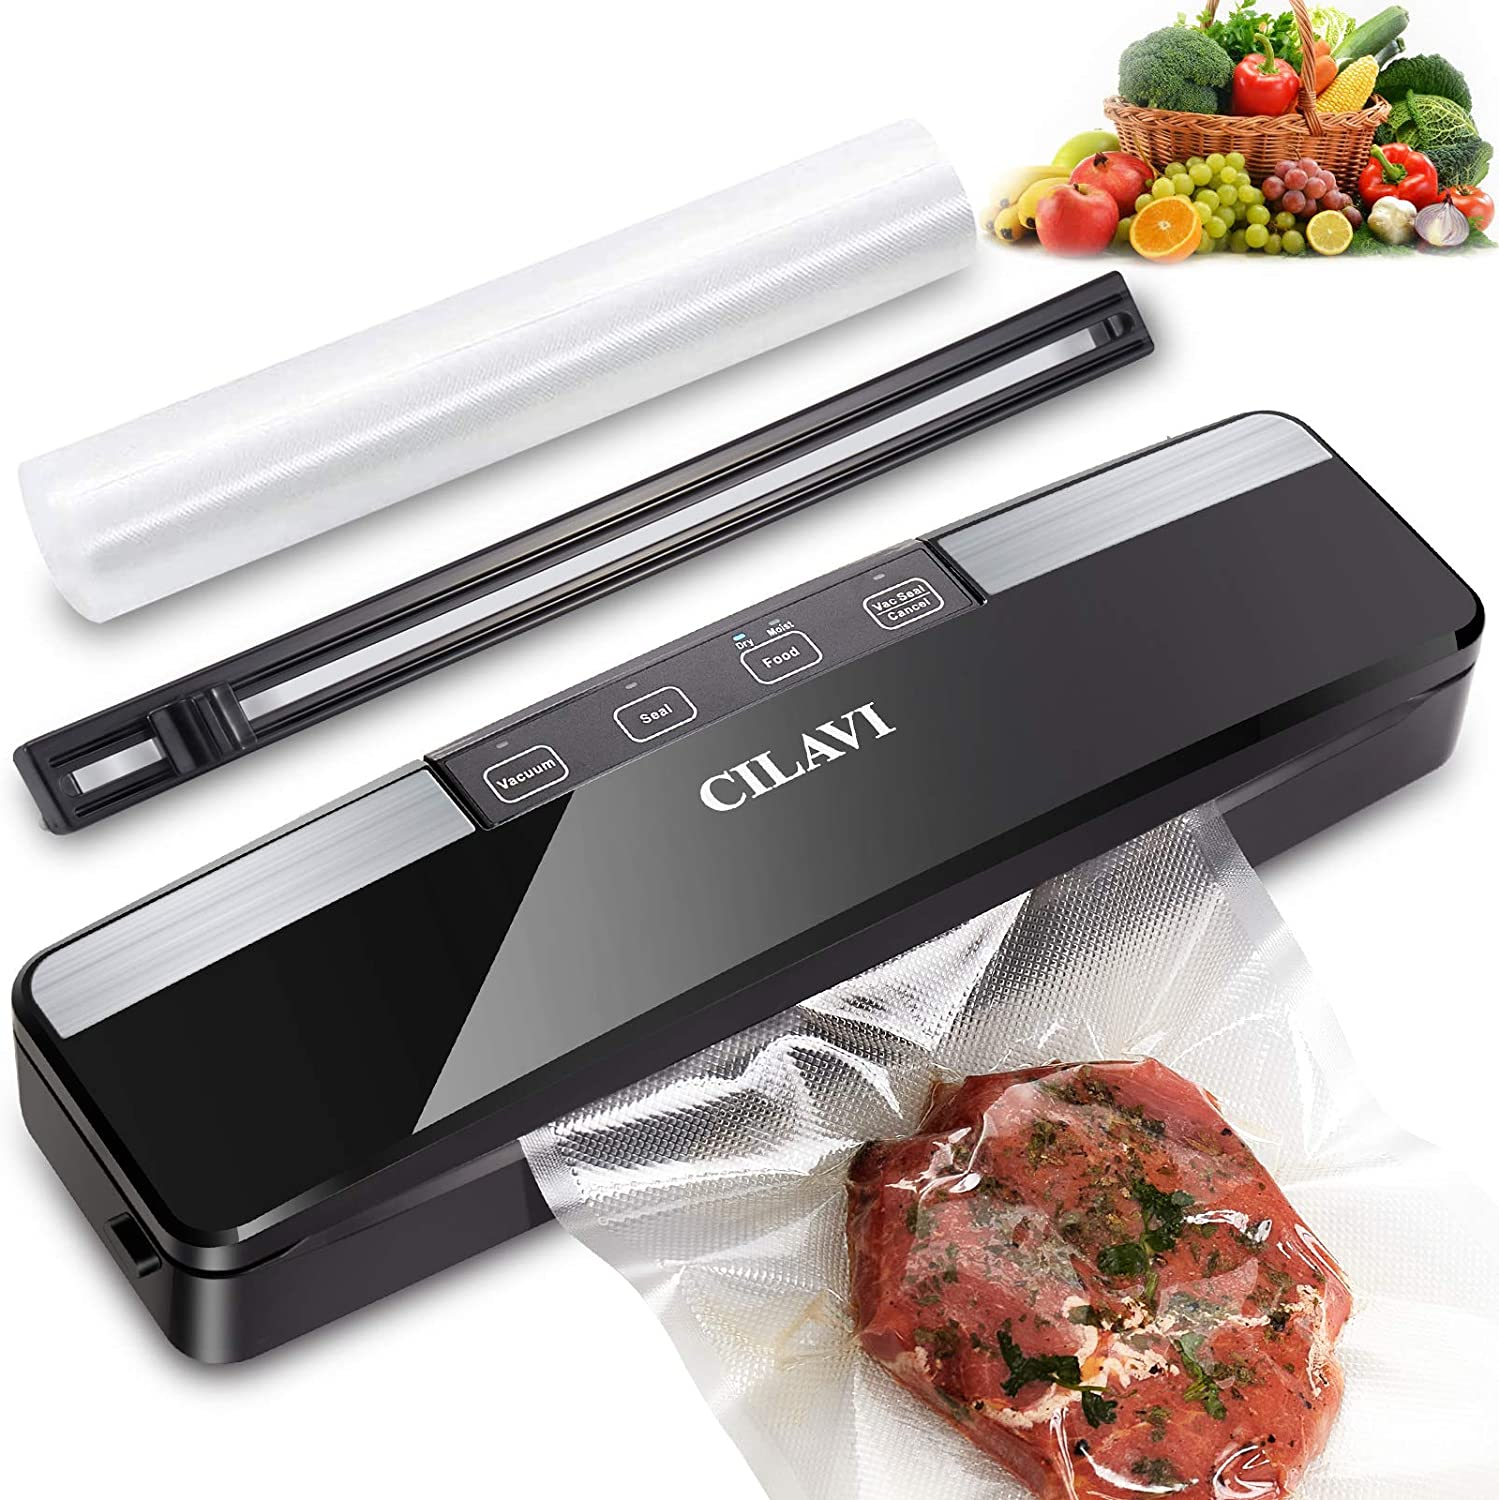 CILAVI Food Vacuum Sealer Machine with Roll Cutter & Hose Automatic Food Saver with 10pcs Vacuum Sealer Bags, Dry and Wet Food Vacuum Sealing,Great for Bag Jar Container Food Sealer Storage